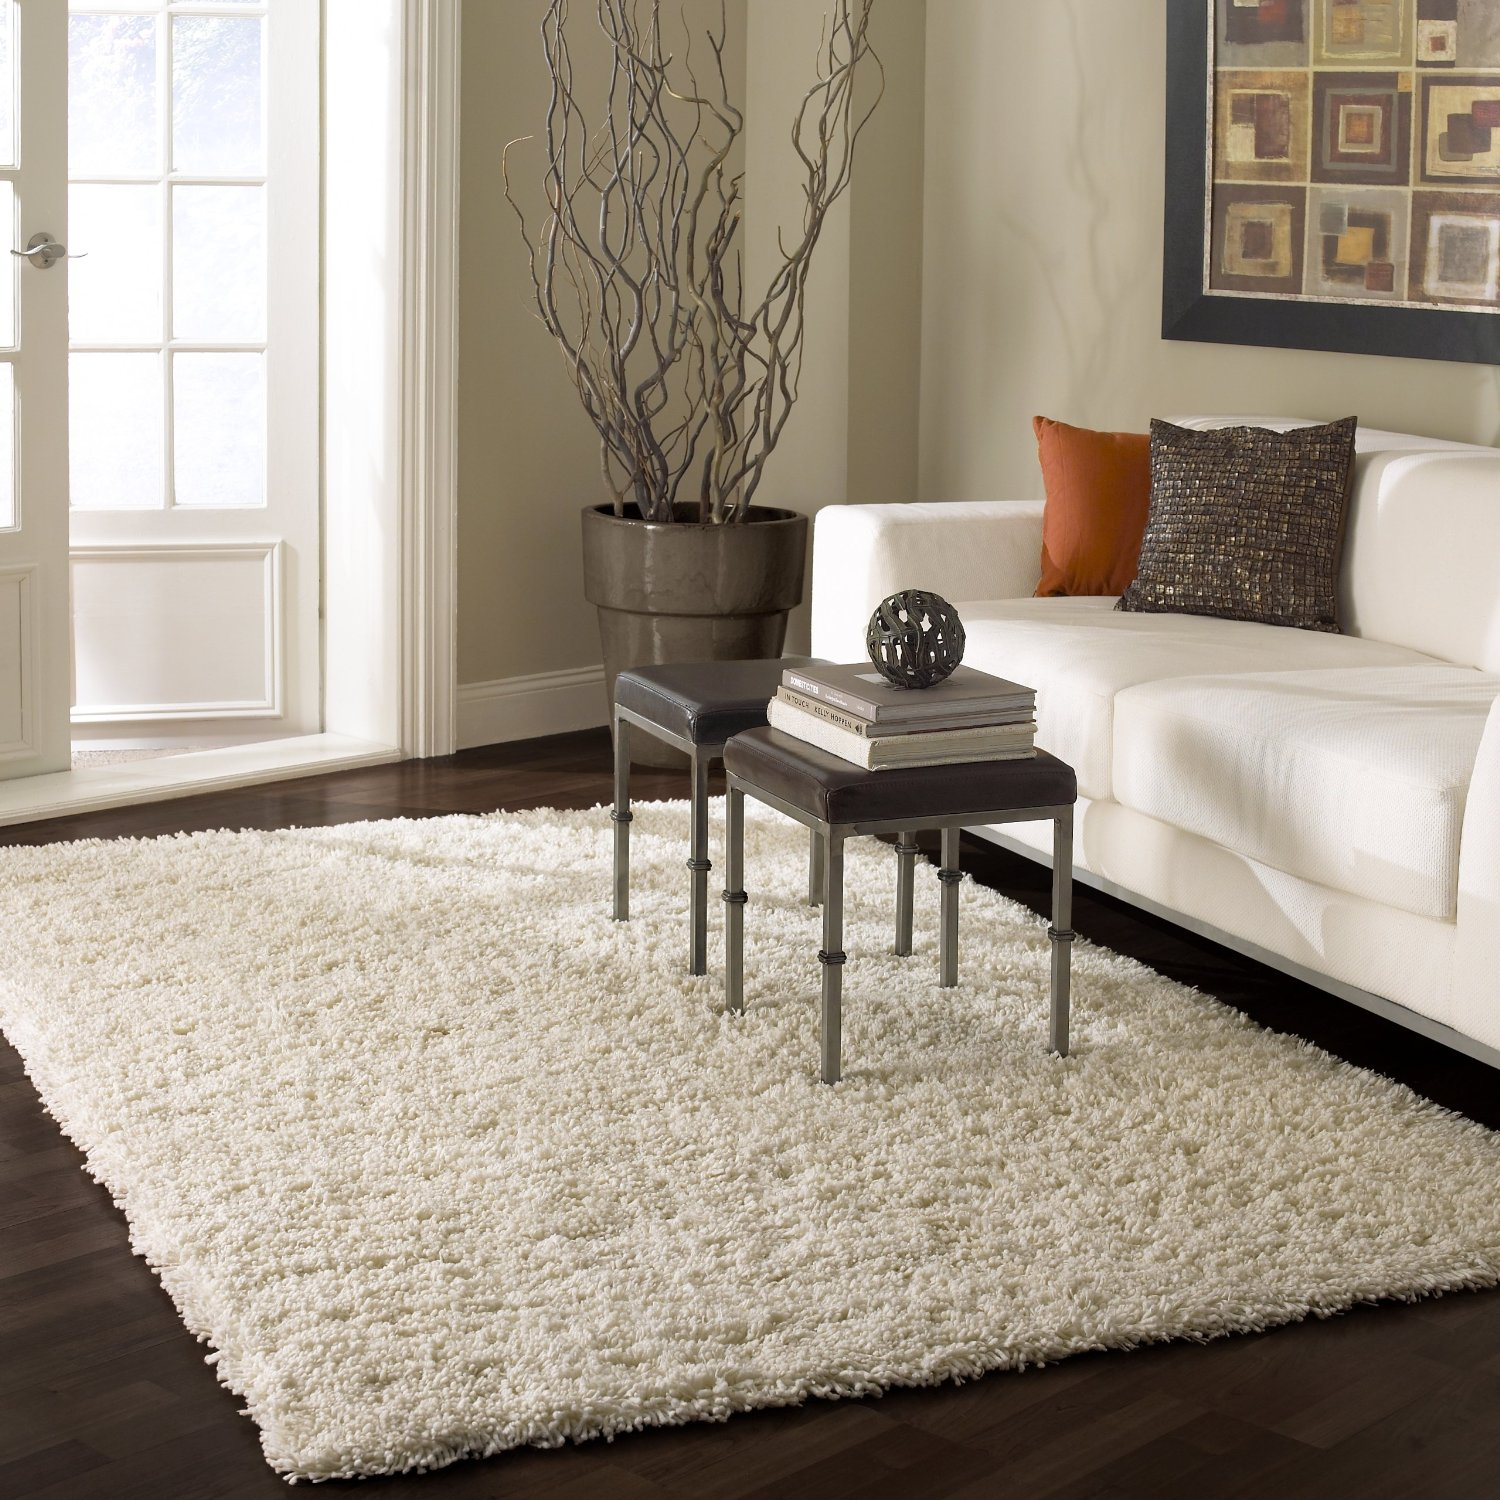 Beautiful living room rug minimalist ideas midcityeast - Living room area rugs ...